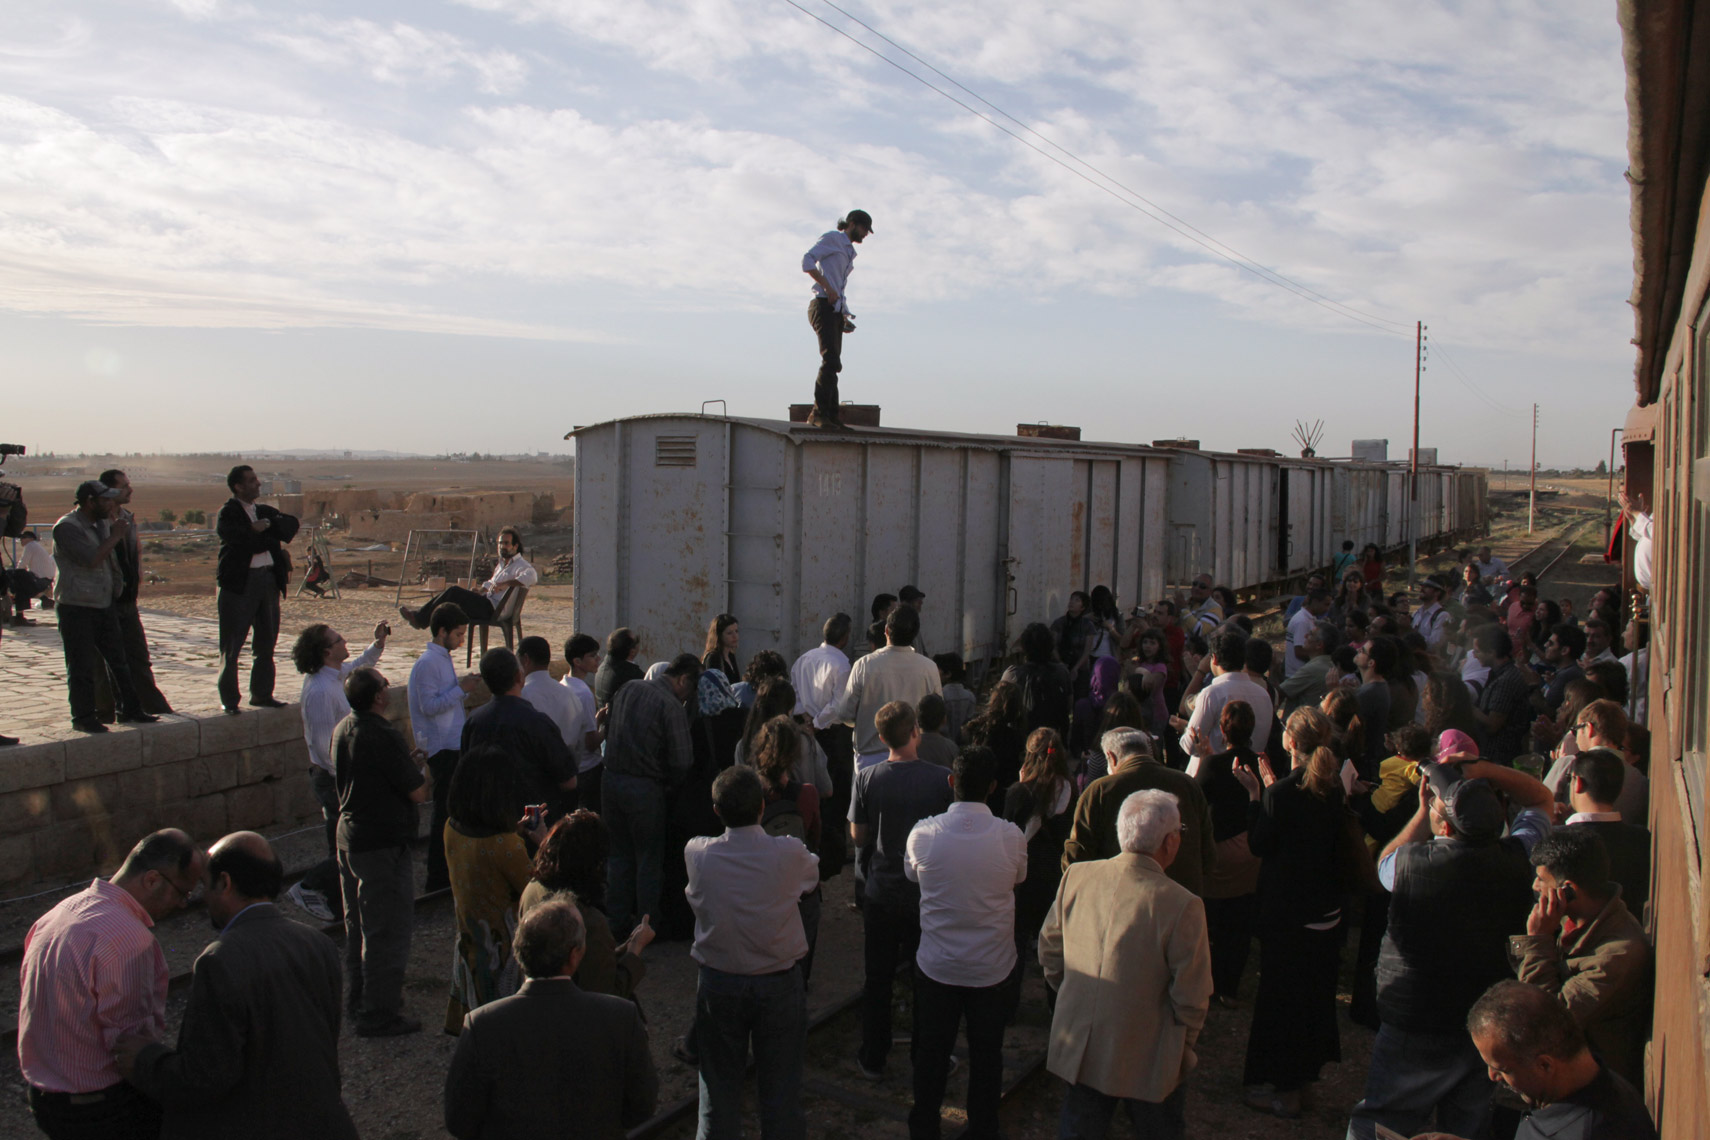 Syrian poet Ayham Agha performs on top of trains in Giza.